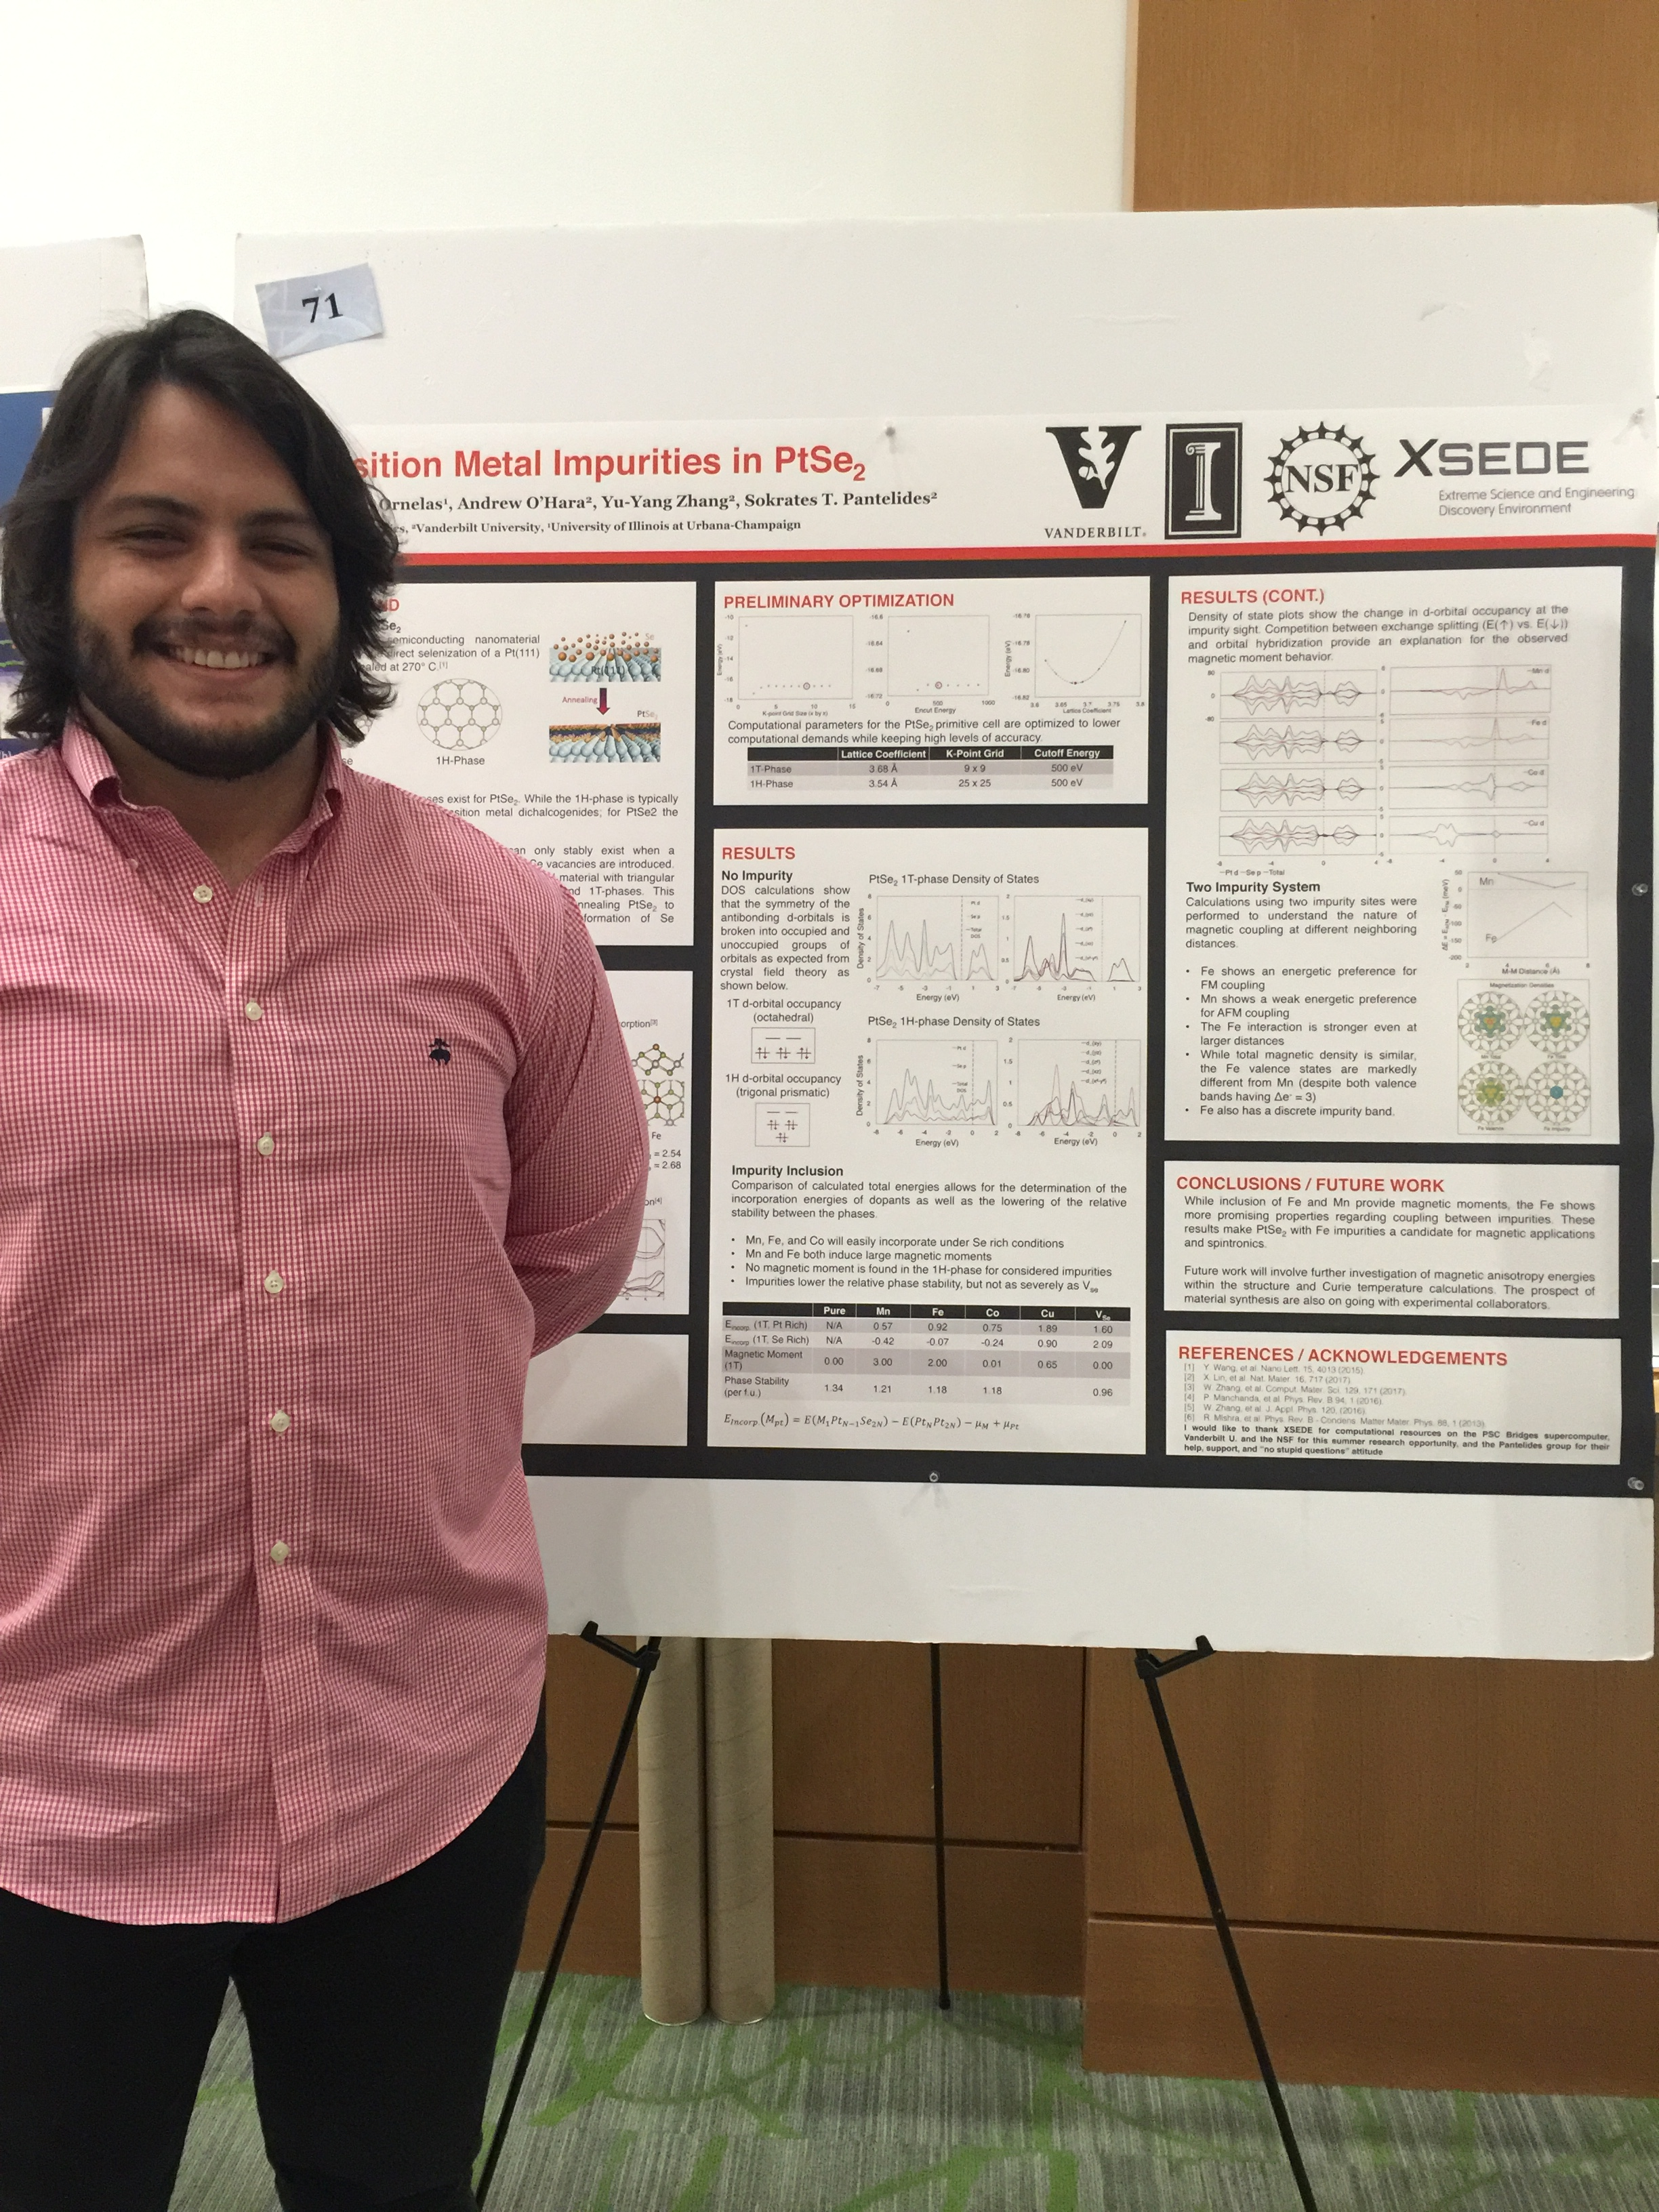 VSSA Summer Research Symposium, Vanderbilt University: Christian Ornelas.